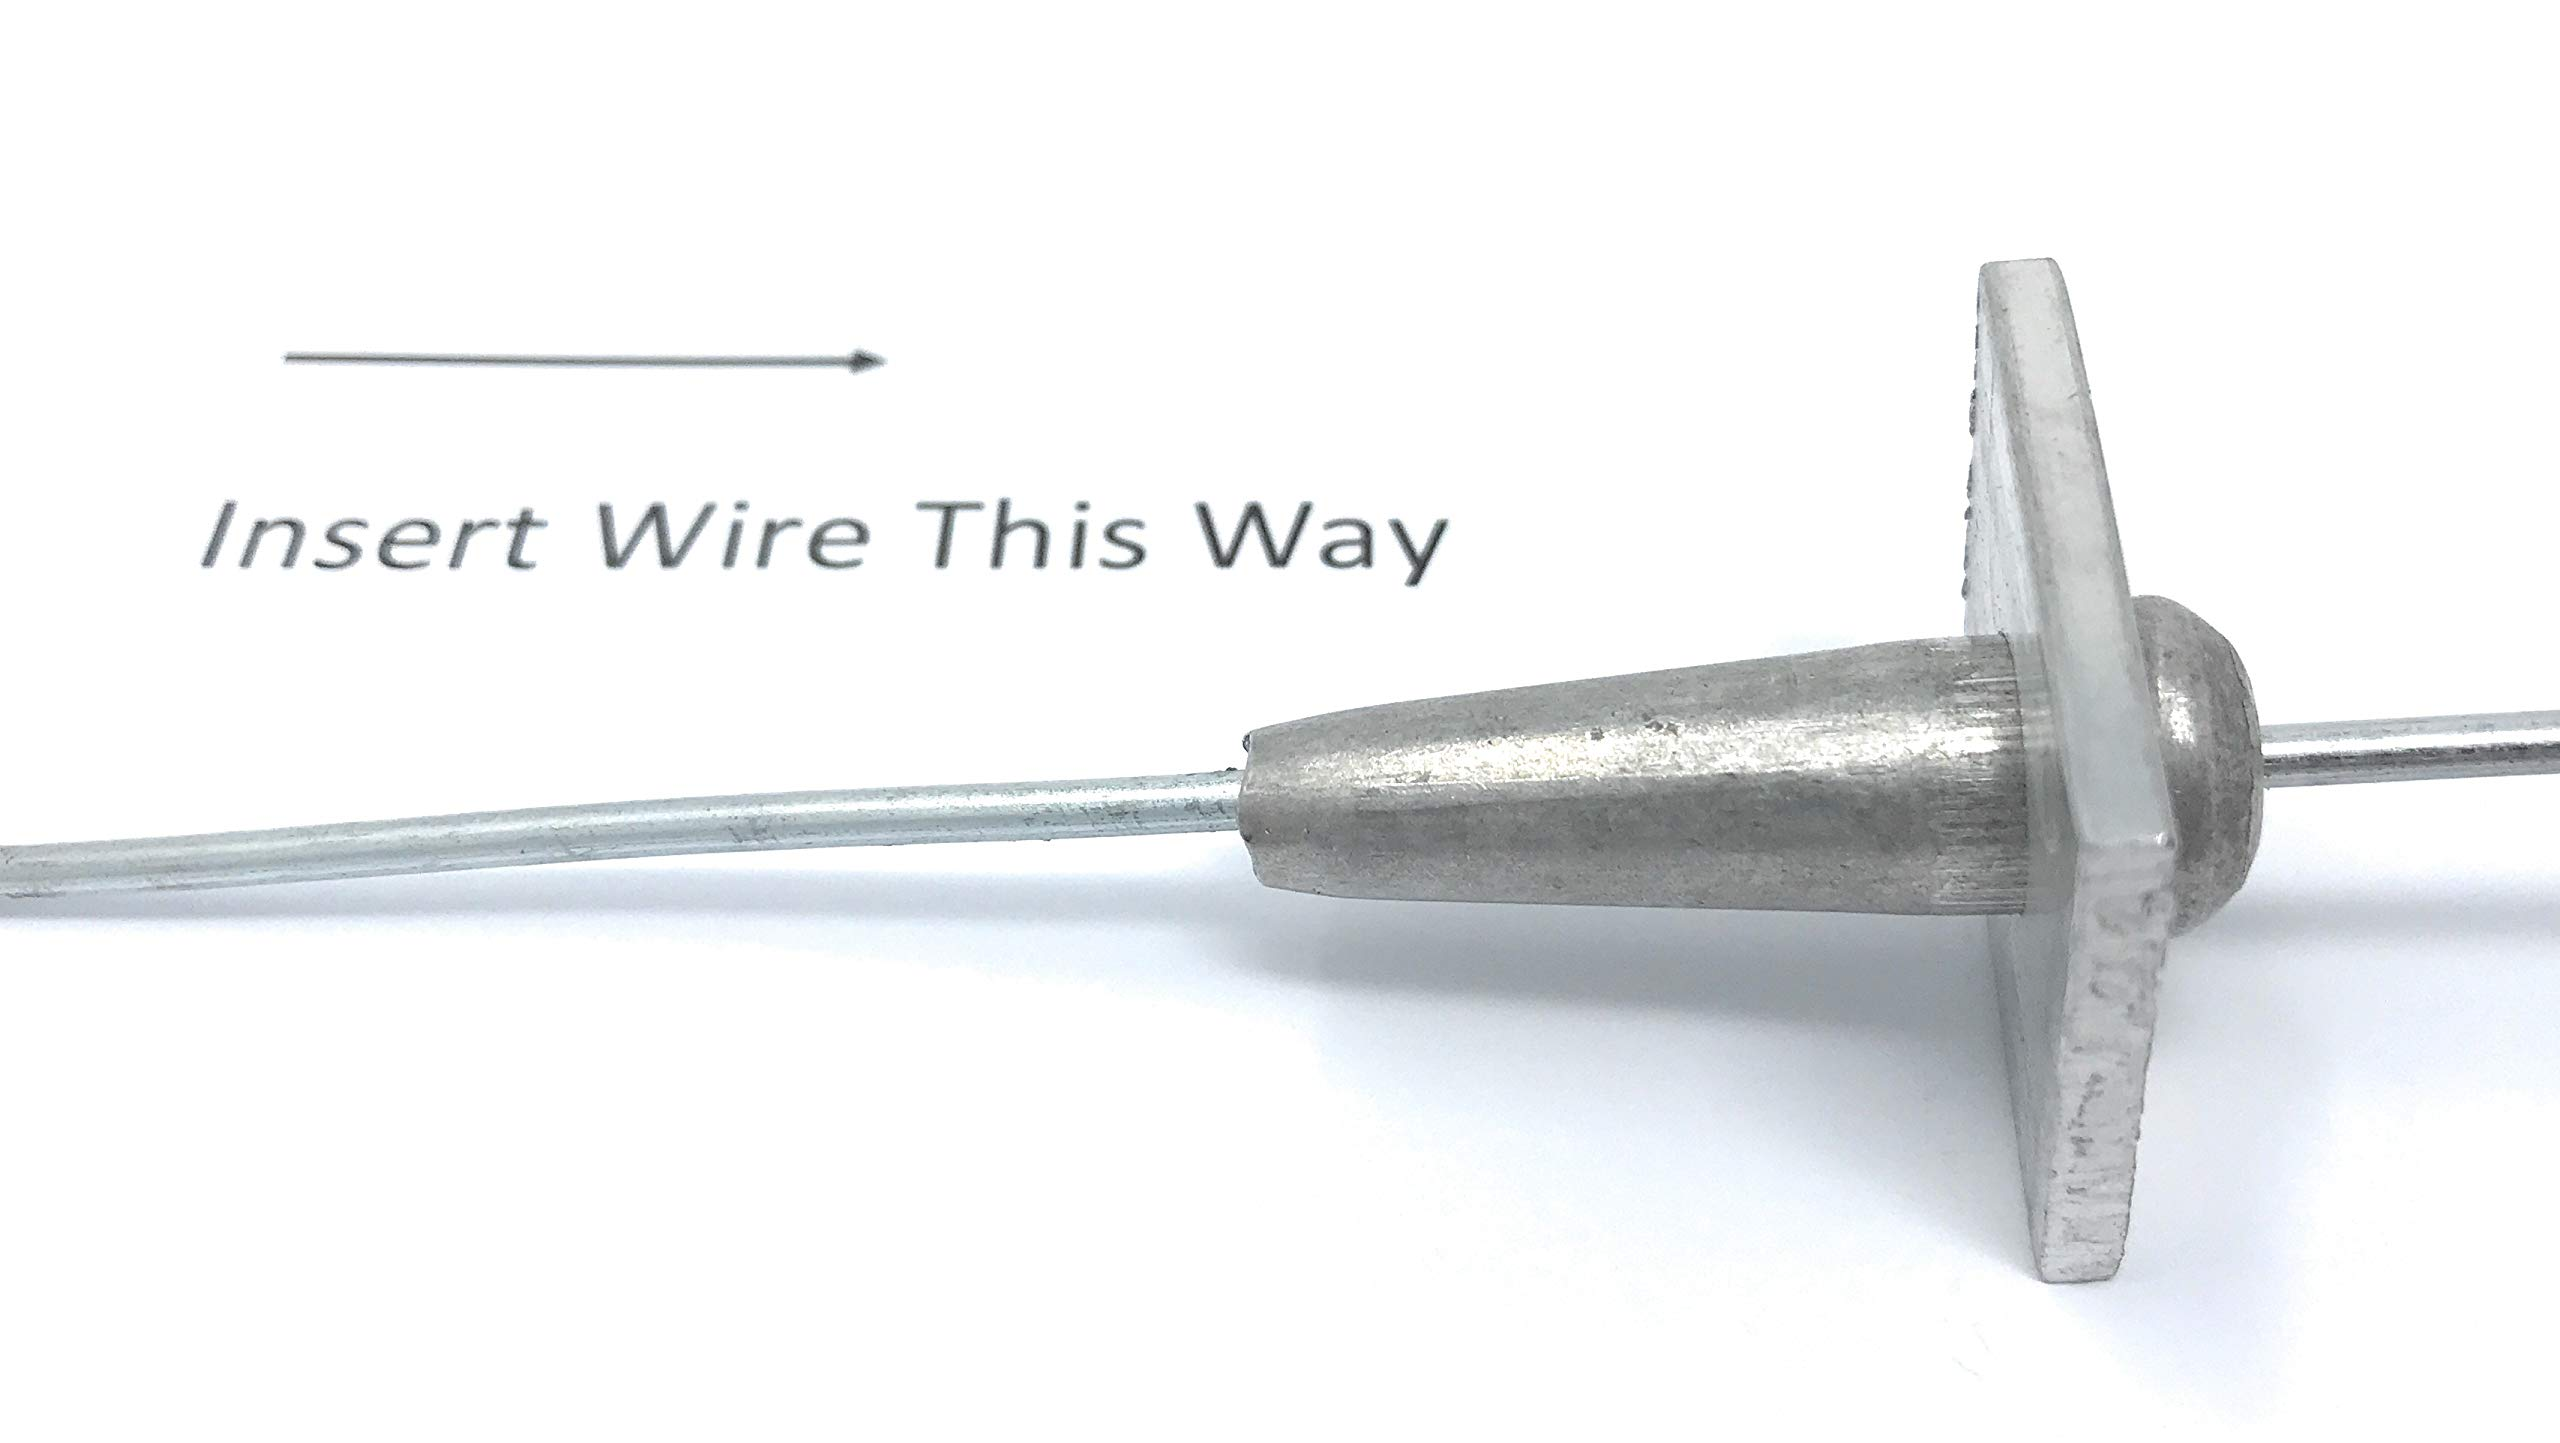 LinkEZ One Way Anchor Vise Trellis Tightening 14~17 GA Wire, Pack of 10 by LinkEZ (Image #2)